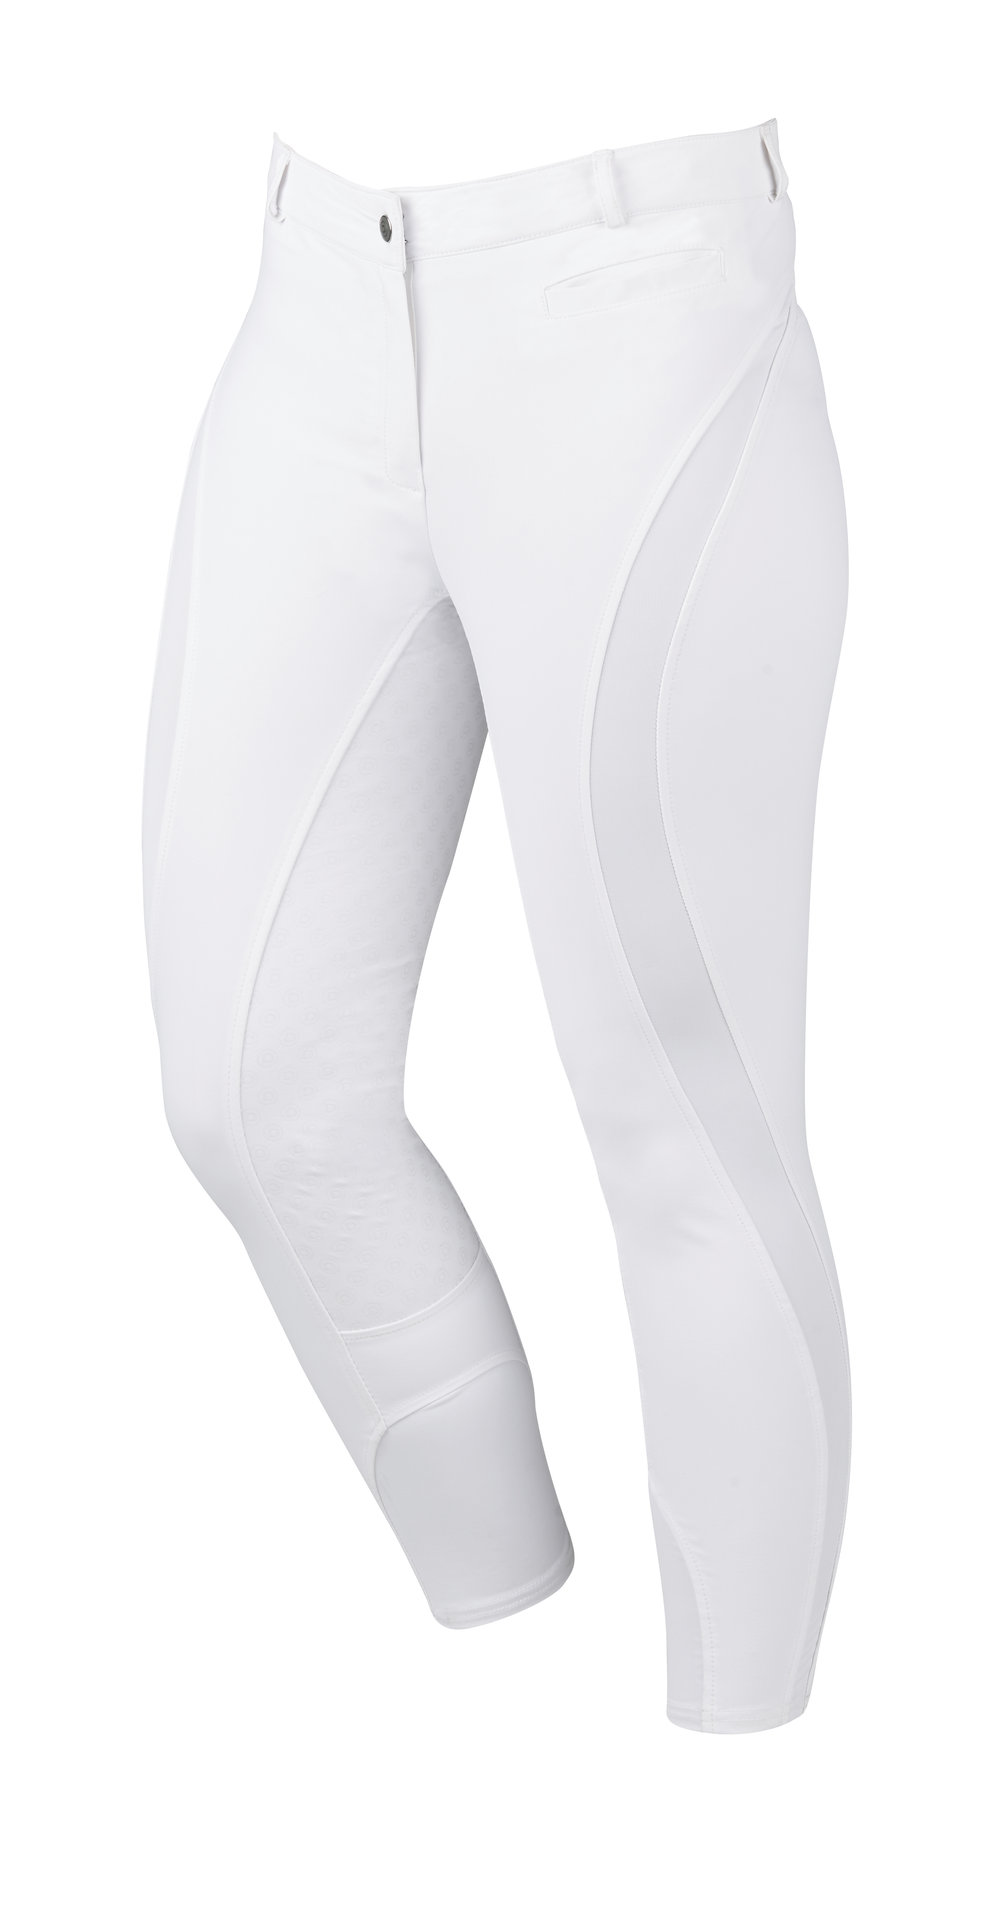 The Edge Gel Breeches feature an action panel for supreme range of motion